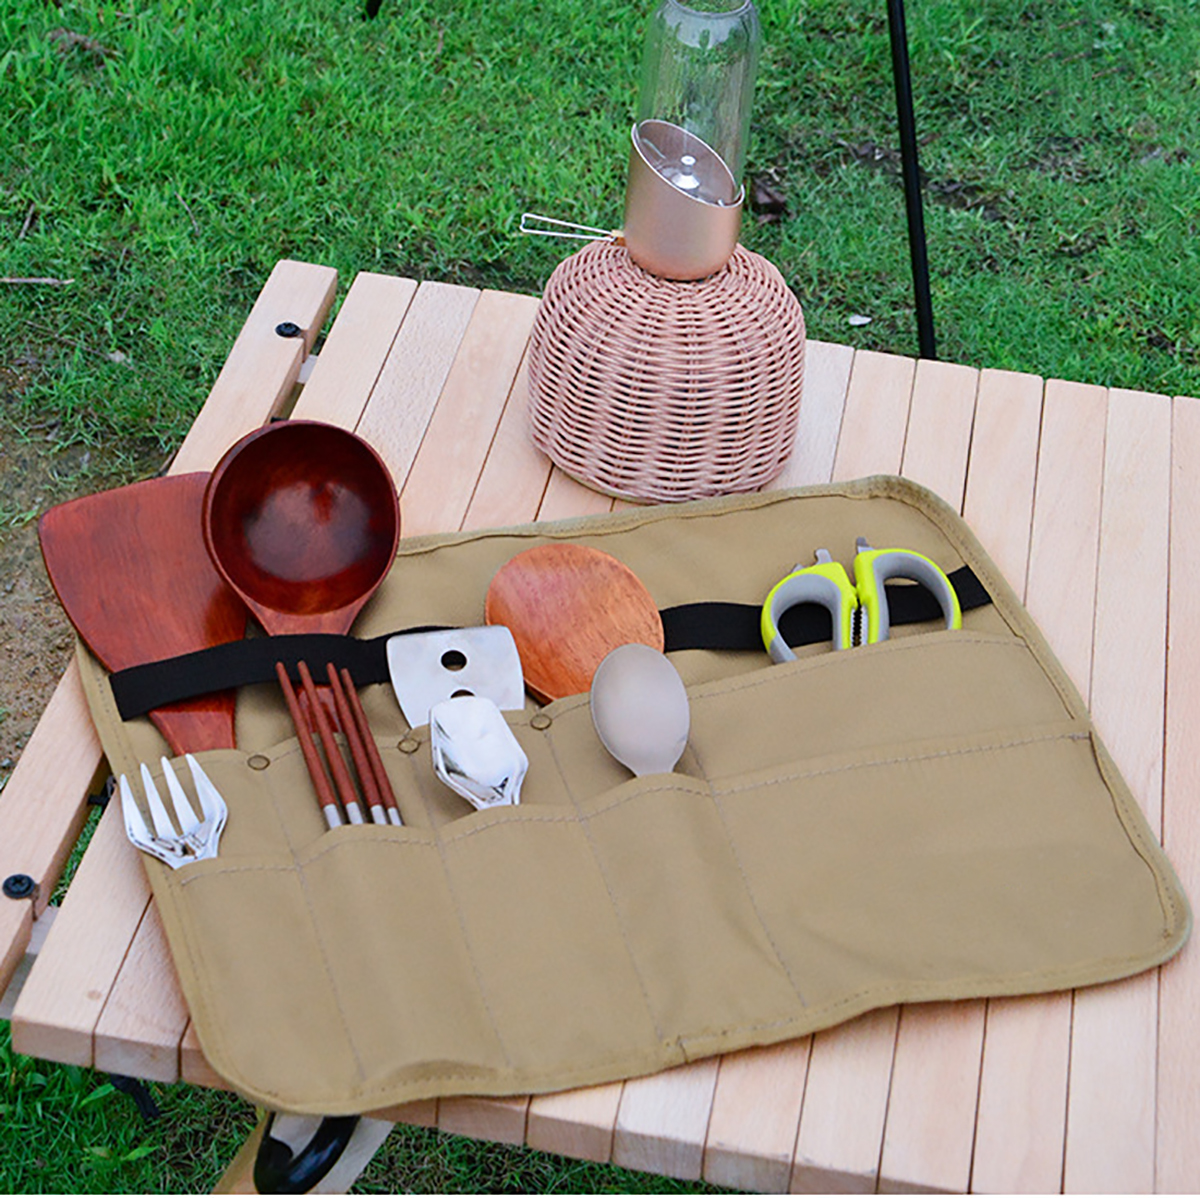 900D Oxford Cloth Tableware Storage Bag Camping Picnic BBQ Triangle/Rectangle Dinnerware Hanging Holder Bag Outdoor Organizer